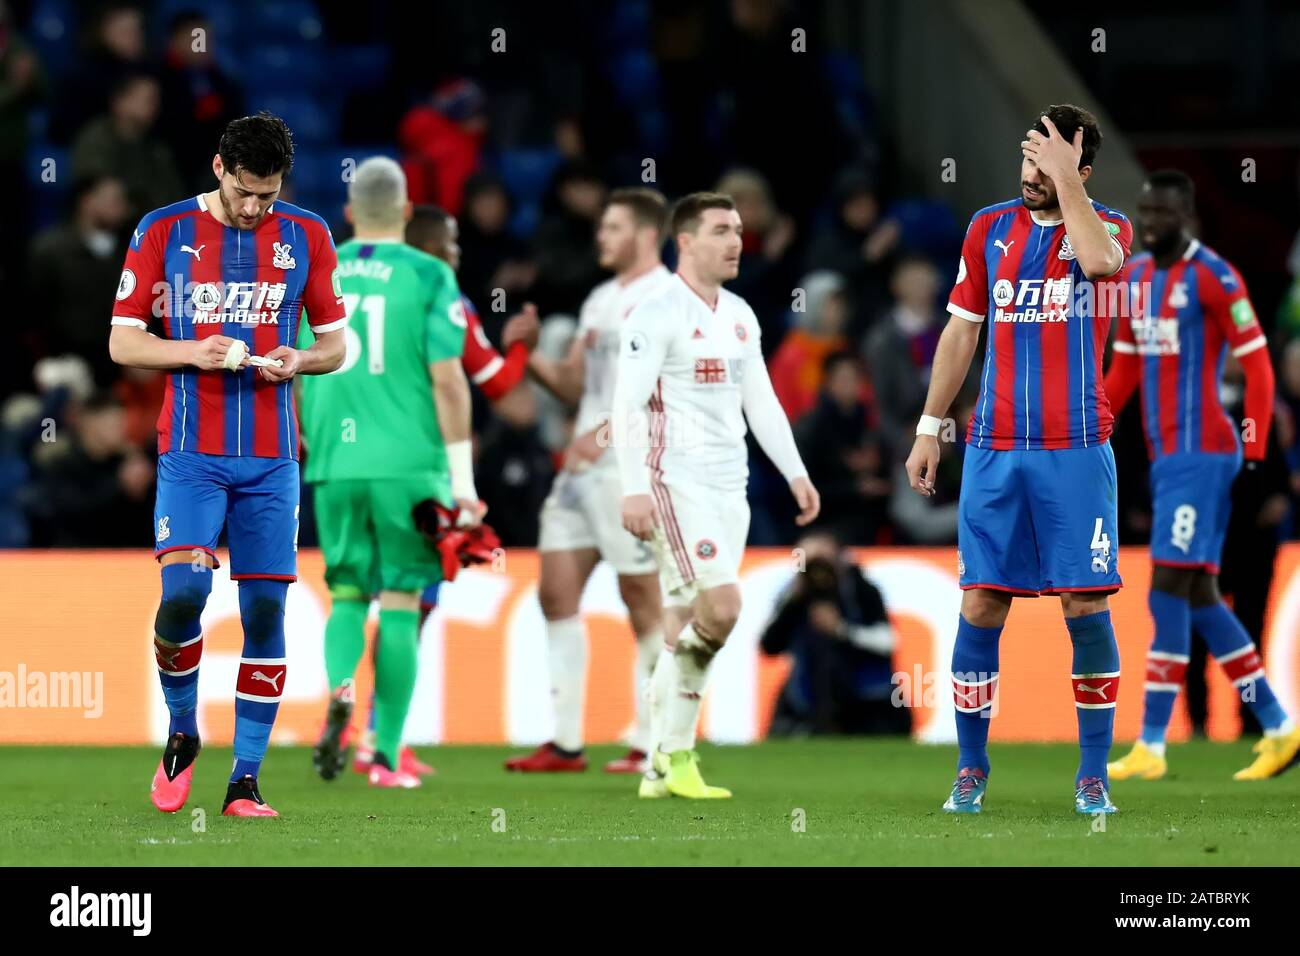 Selhurst Park London Uk 1st Feb 2020 English Premier League Football Crystal Palace Versus Sheffield United